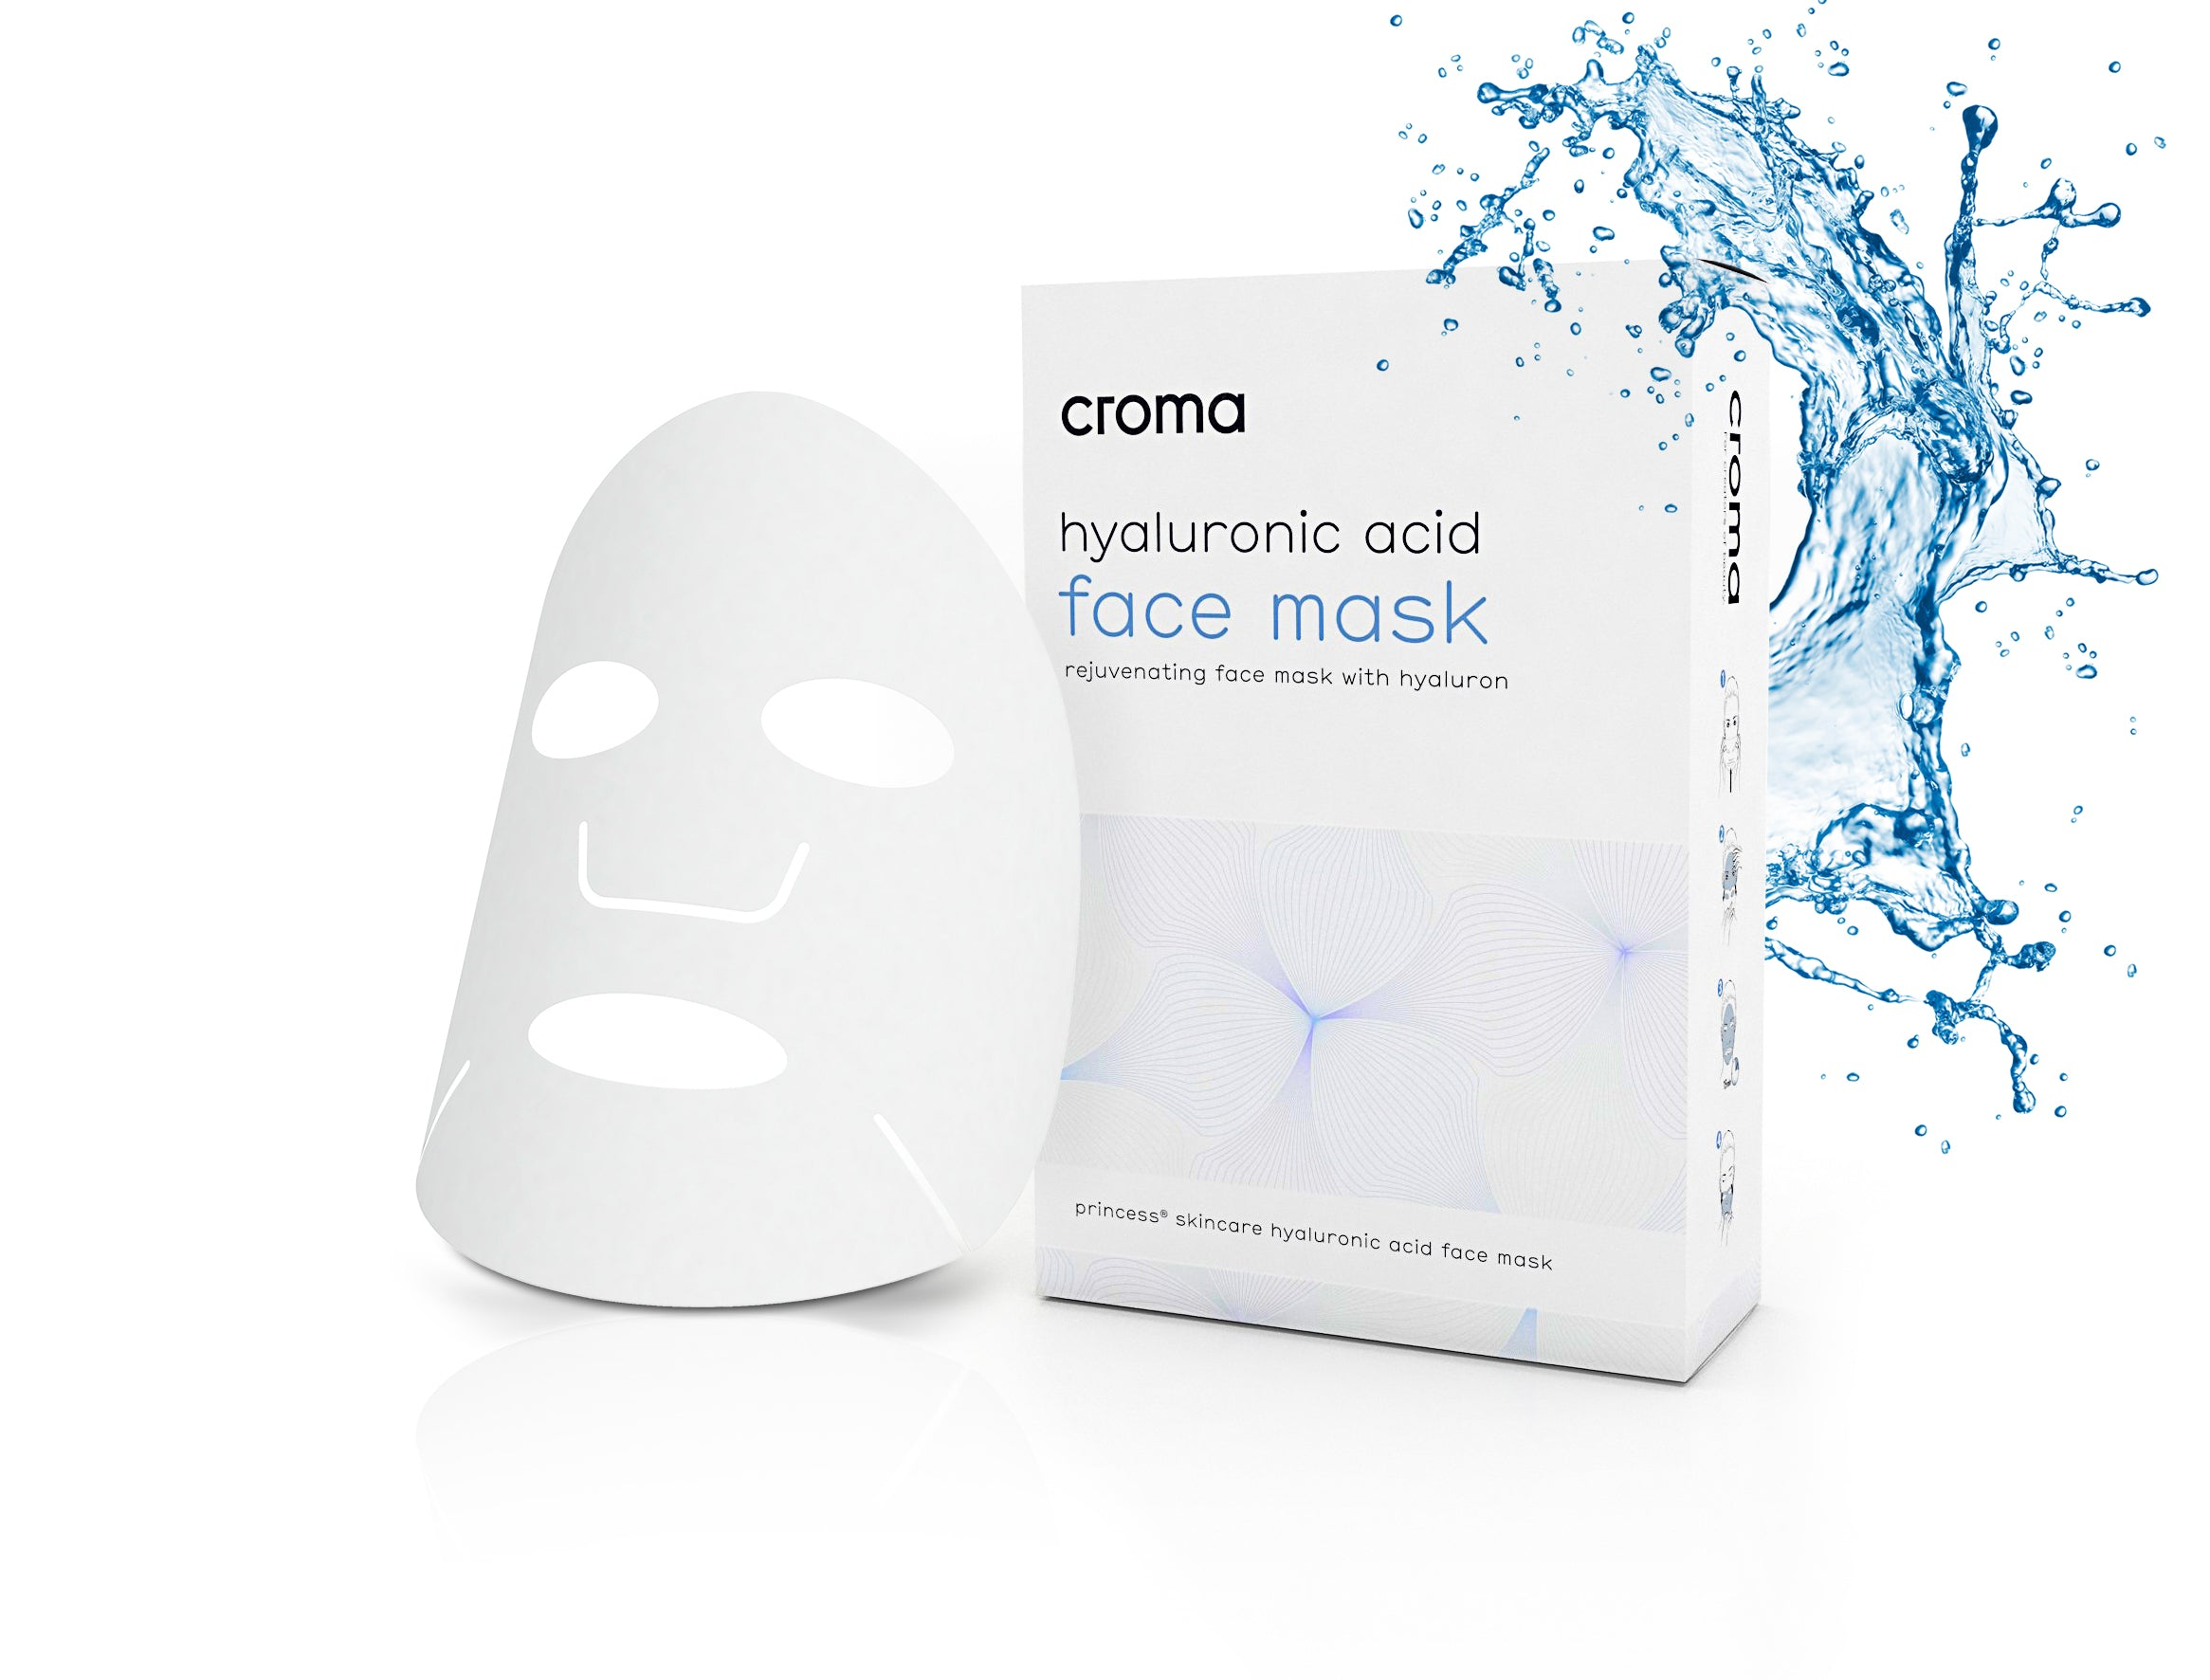 Croma - Hyaluronic Acid Face Mask (8 pack)